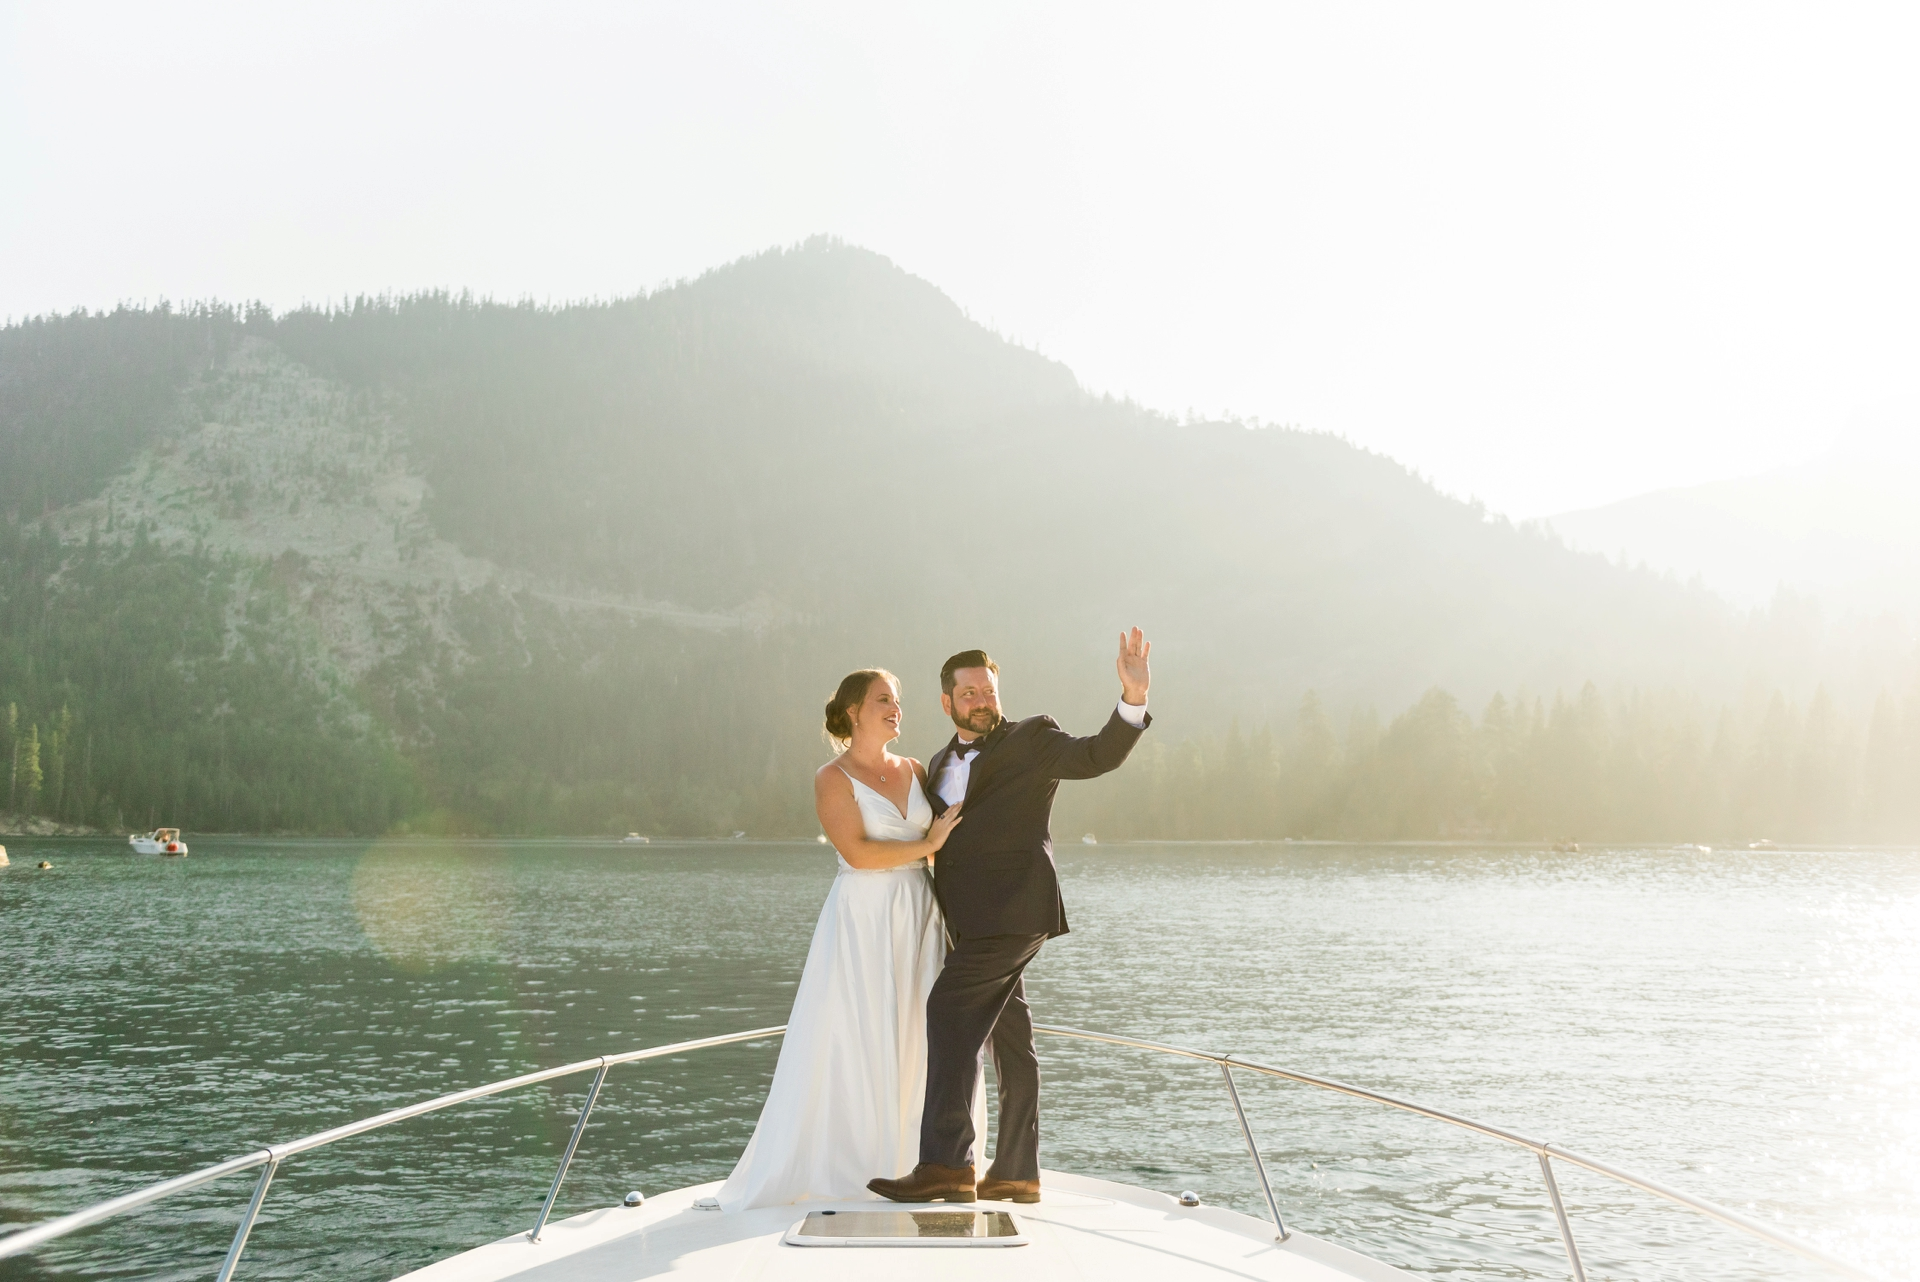 Boat Wedding Day Portrait - South Lake Tahoe | portraits are interrupted as people yell congratulations